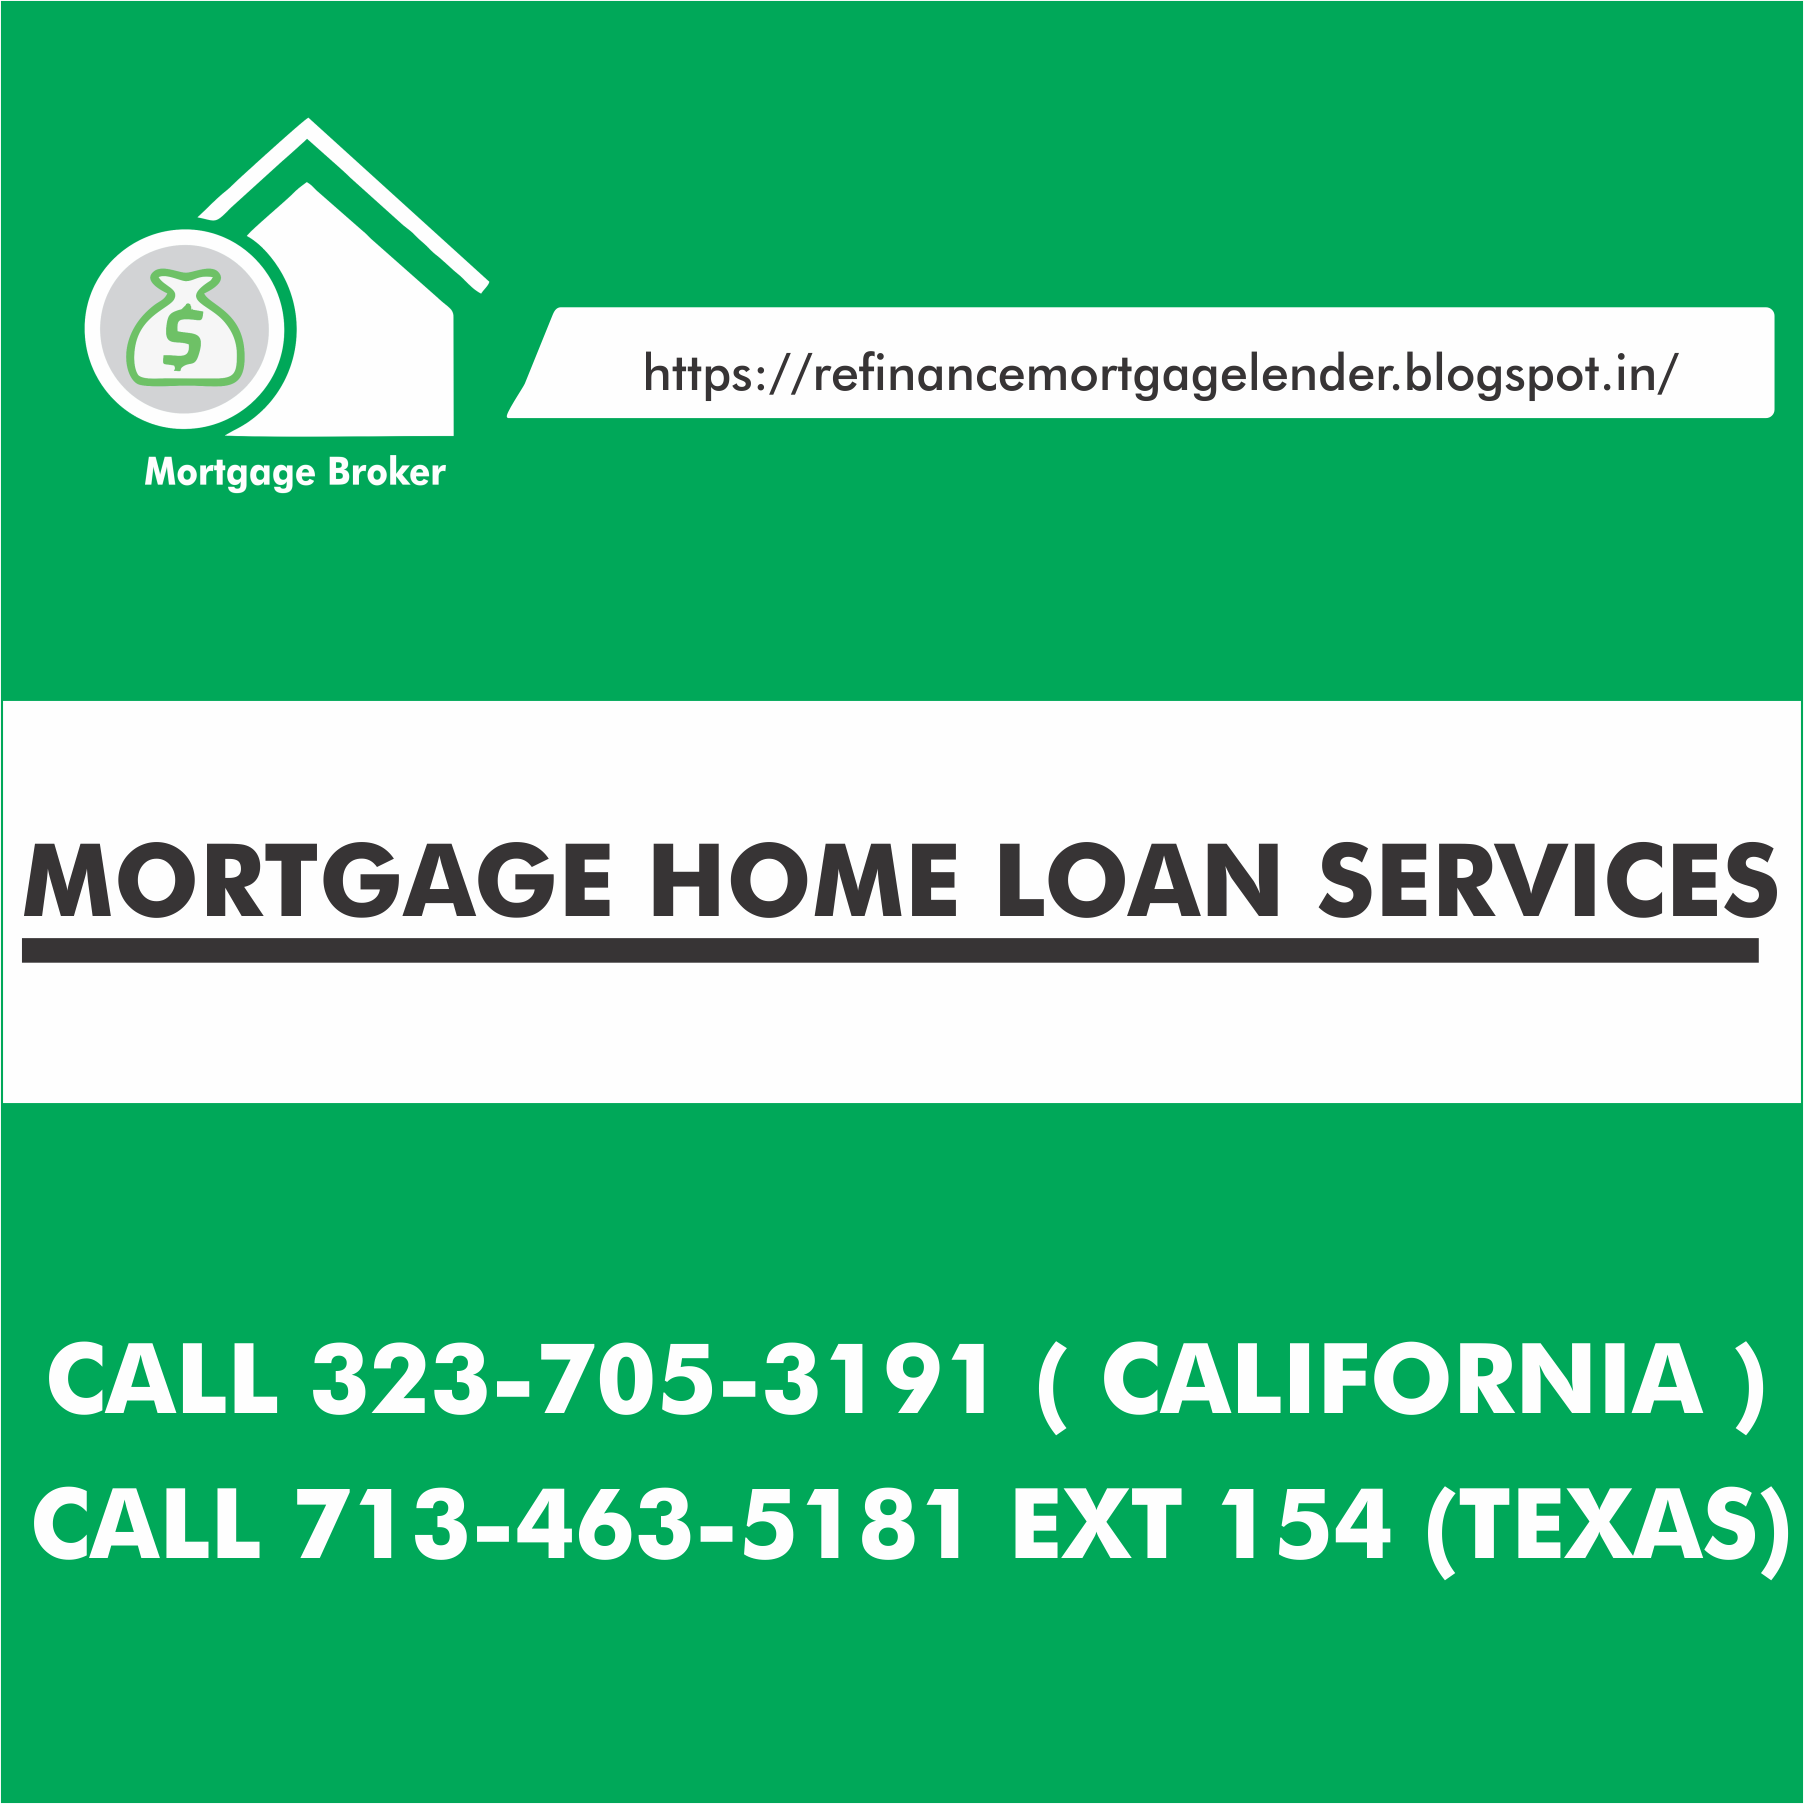 How To Remove Name From Mortgage Without Refinancing